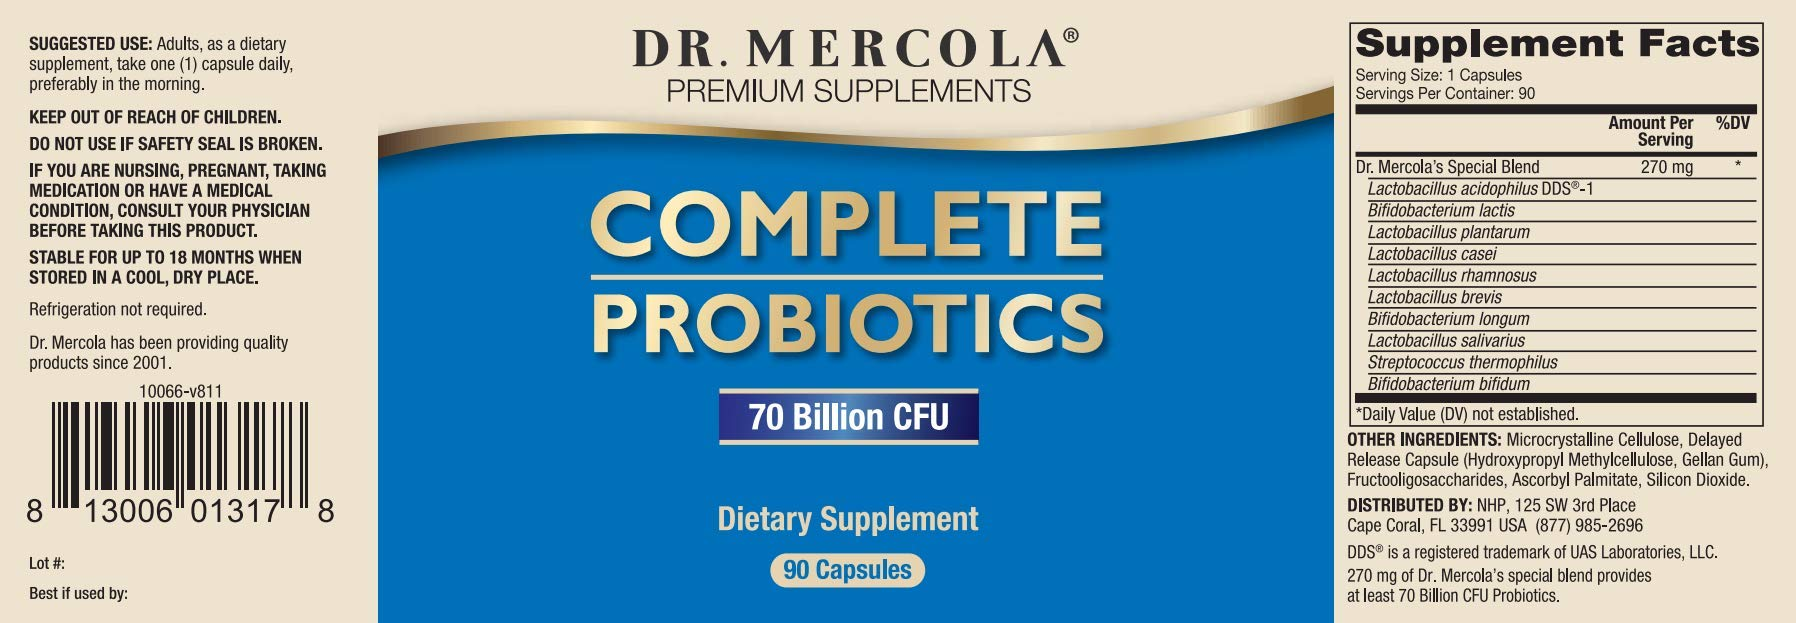 Dr. Mercola Complete Probiotics 180 Ct - 90 Servings- Twice Daily Probiotic Supplement - 70 Billion CFU - Acid & Bile Resistant - Promotes Digestive Health and Supports Immune System